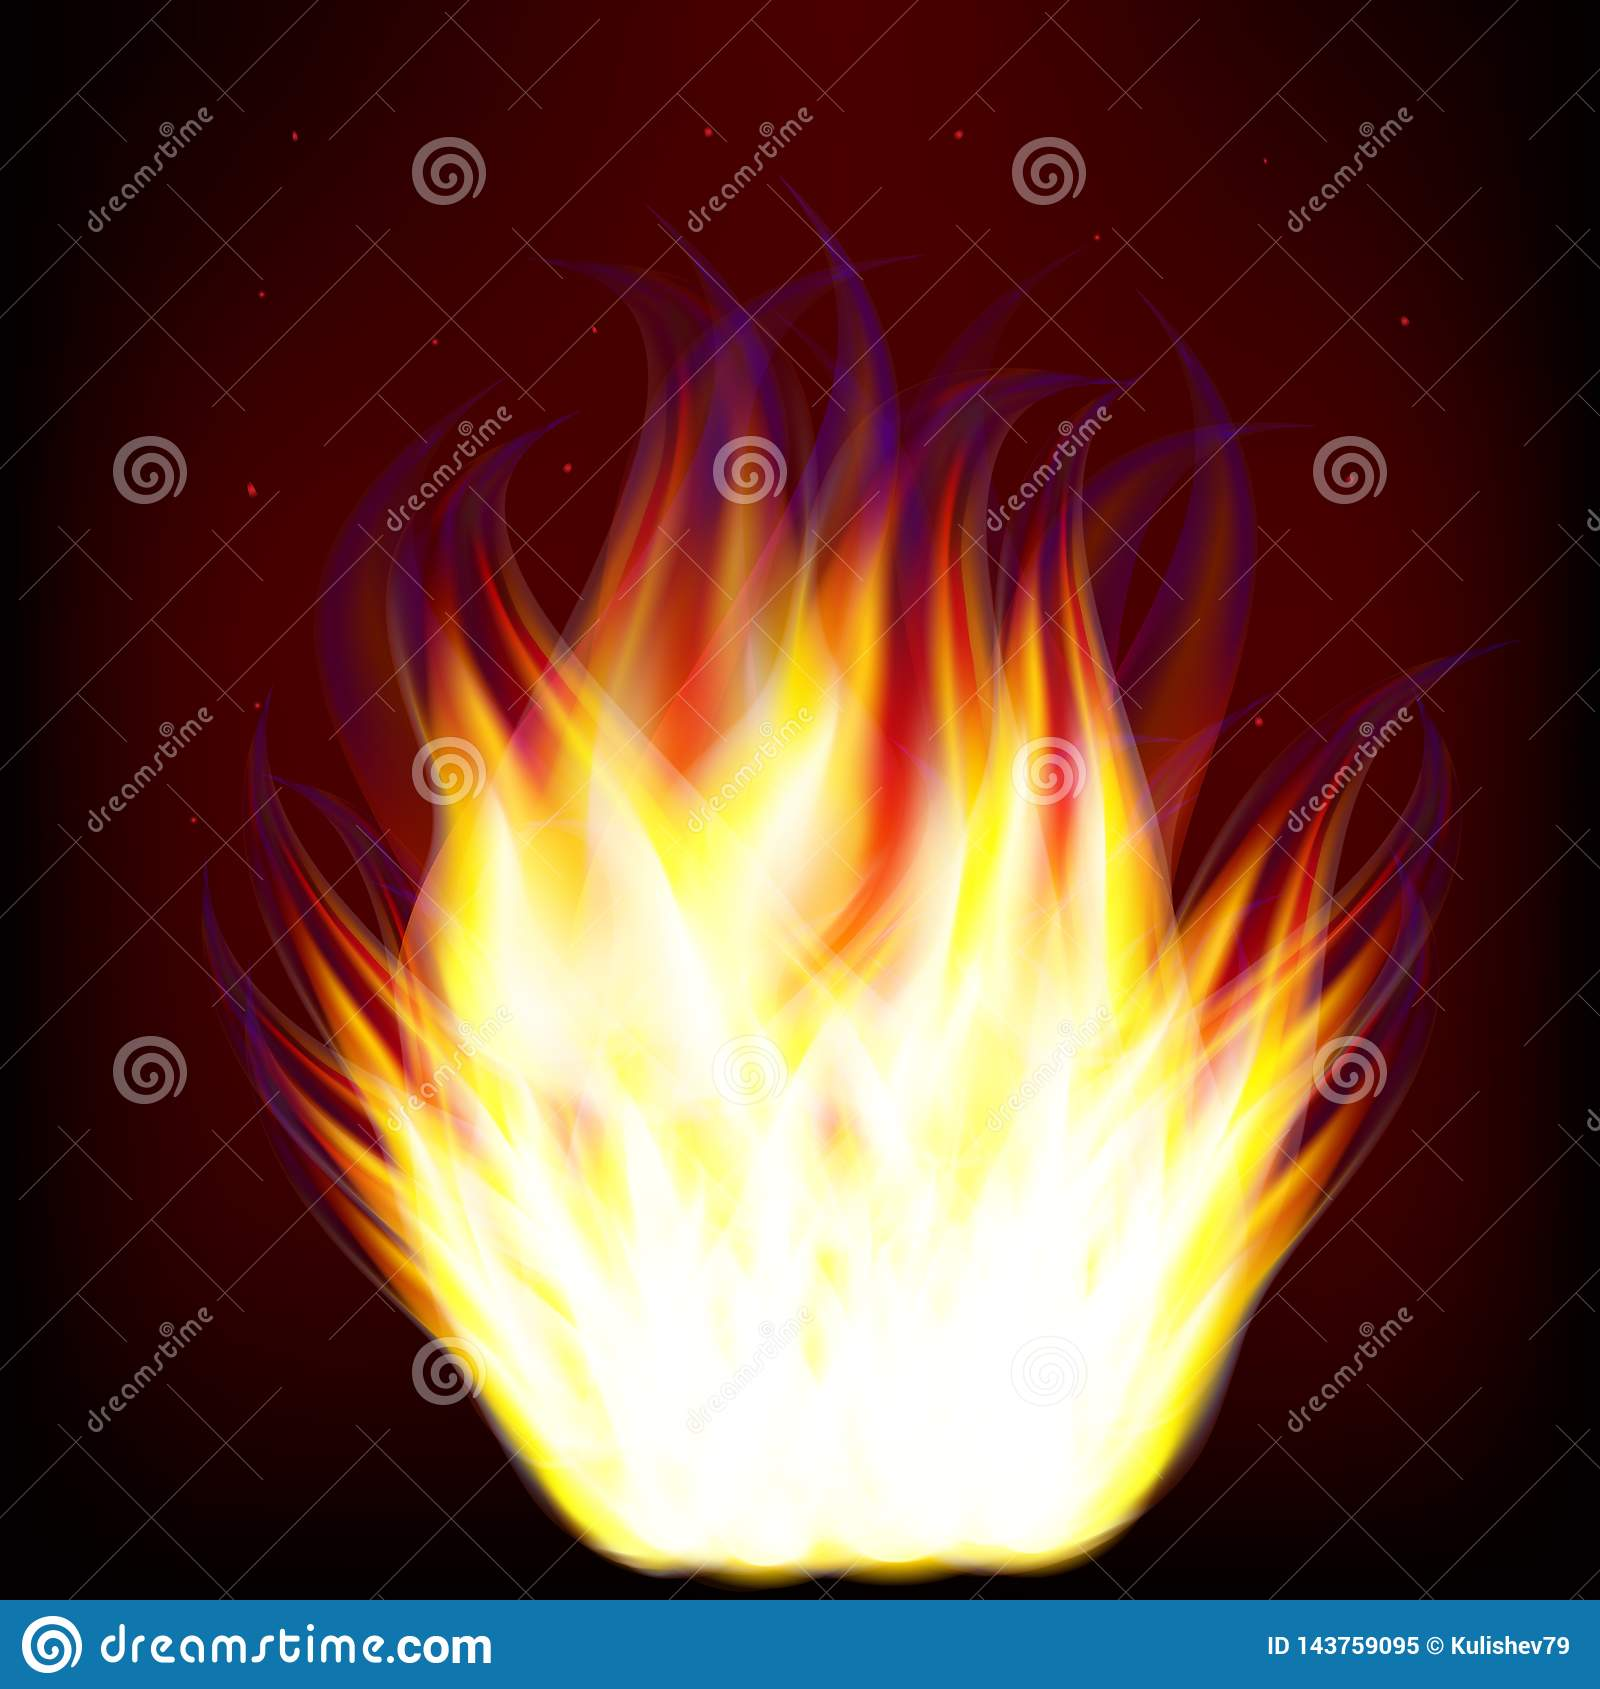 Vector drawing image of burning fire flame on dark background